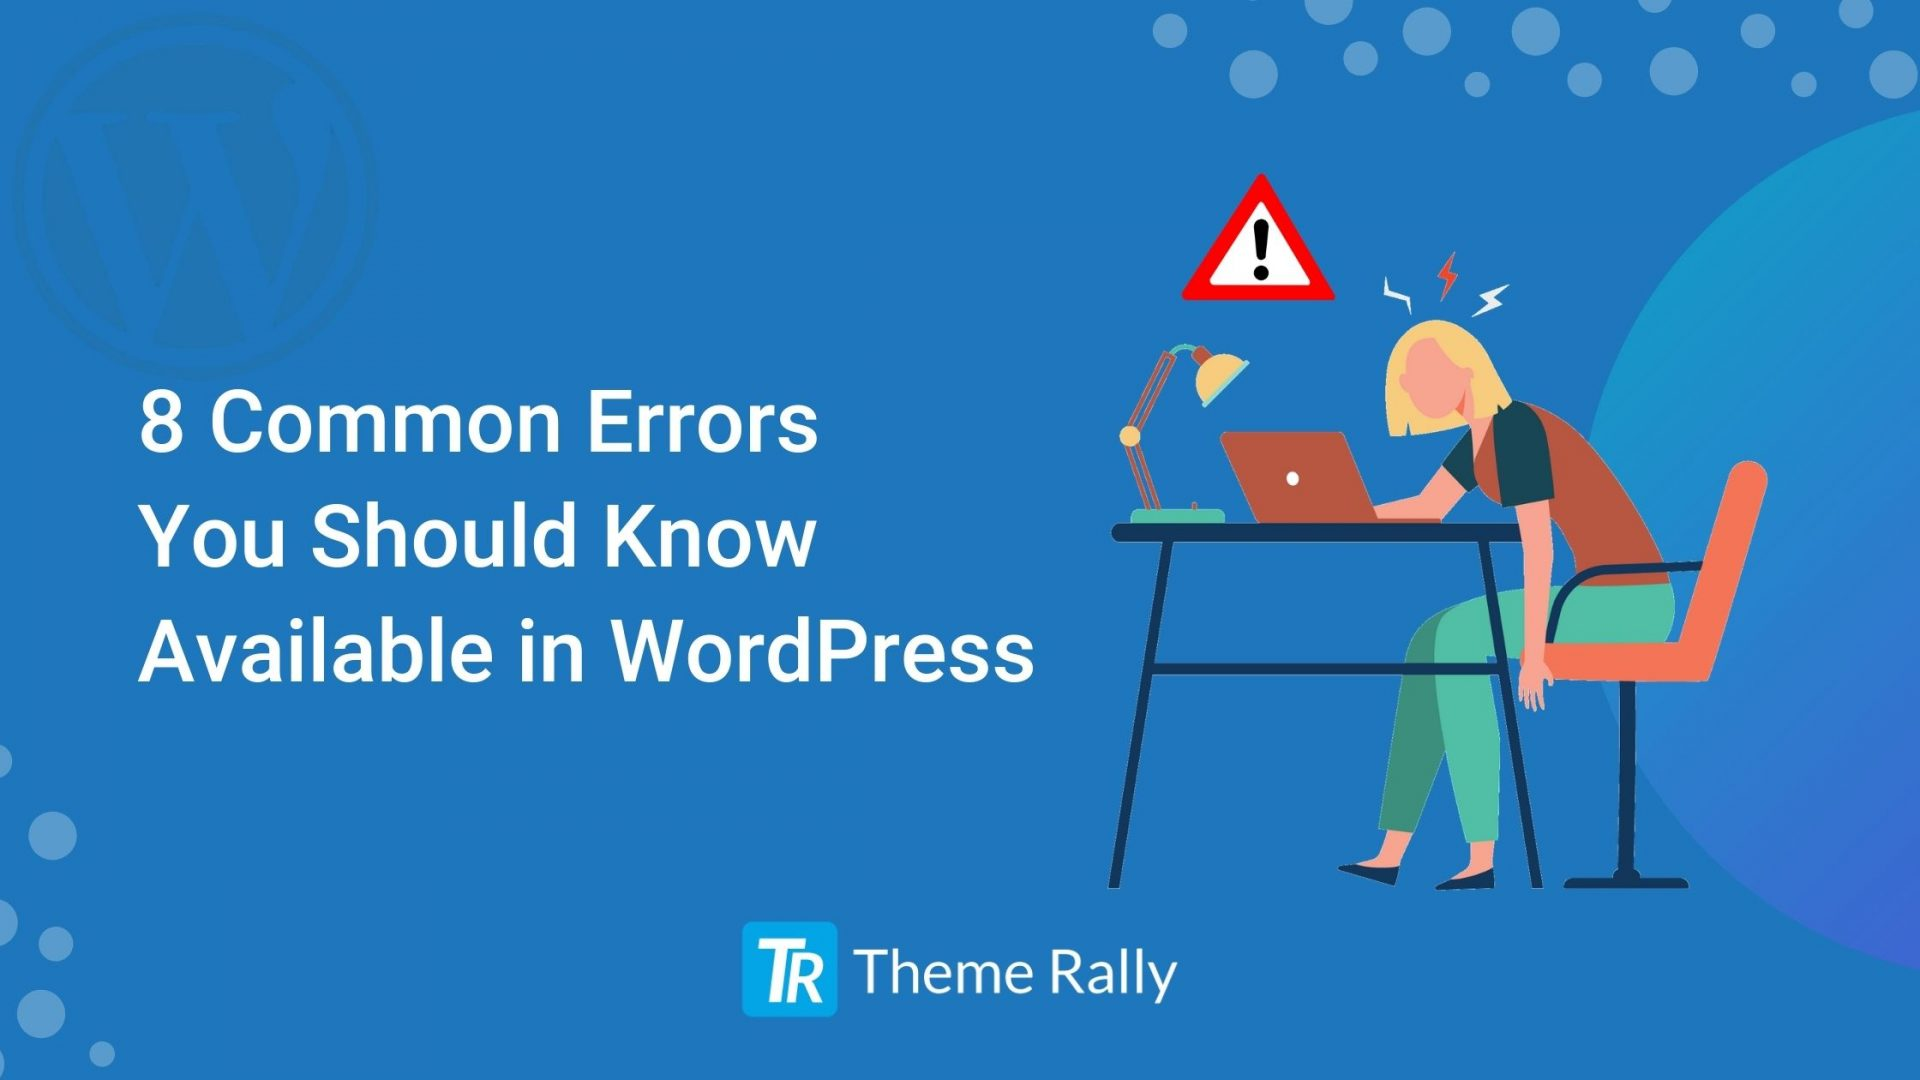 8 Common Errors You Should Know Available in WordPress